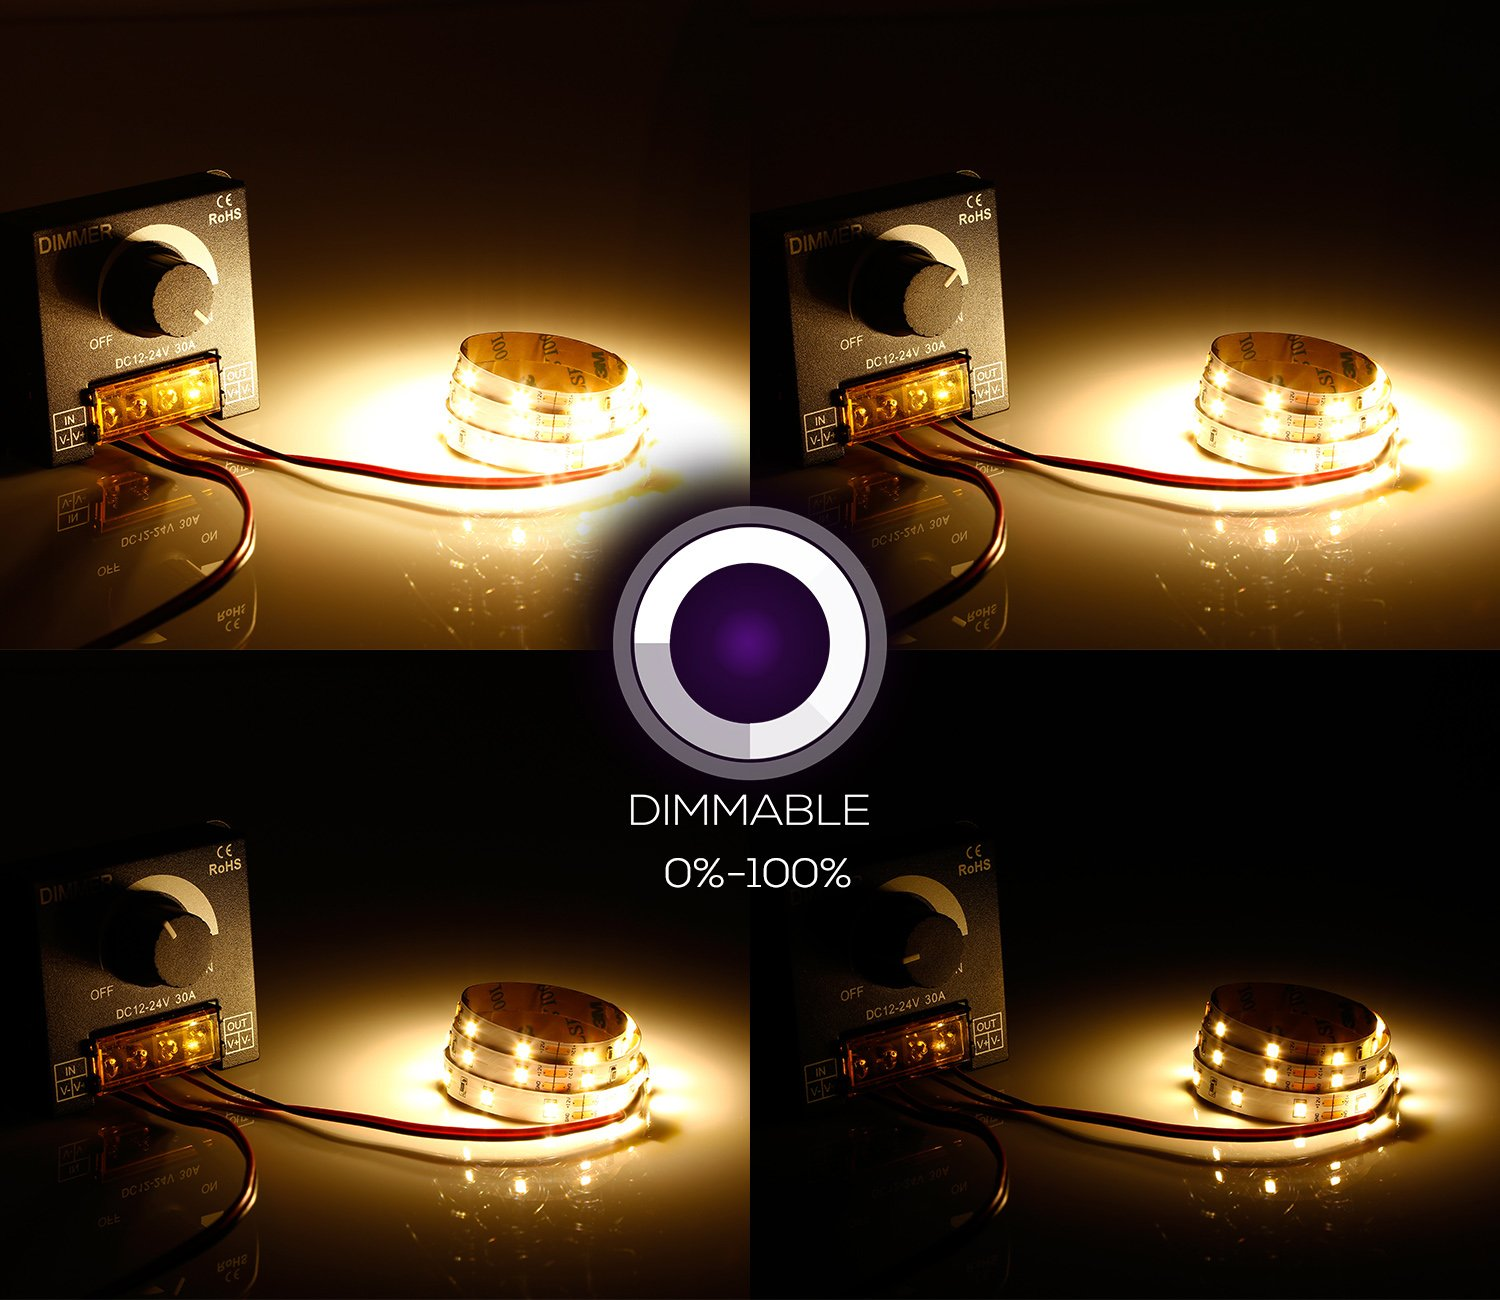 TORCHSTAR PWM Dimming Controller for LED Strip Light, DC 12V - 24V Dimmer Knob ON/OFF Switch with Aluminum Housing, Single Channel 30A 5050 3538 5630 Single Color Light Ribbon by TORCHSTAR (Image #5)